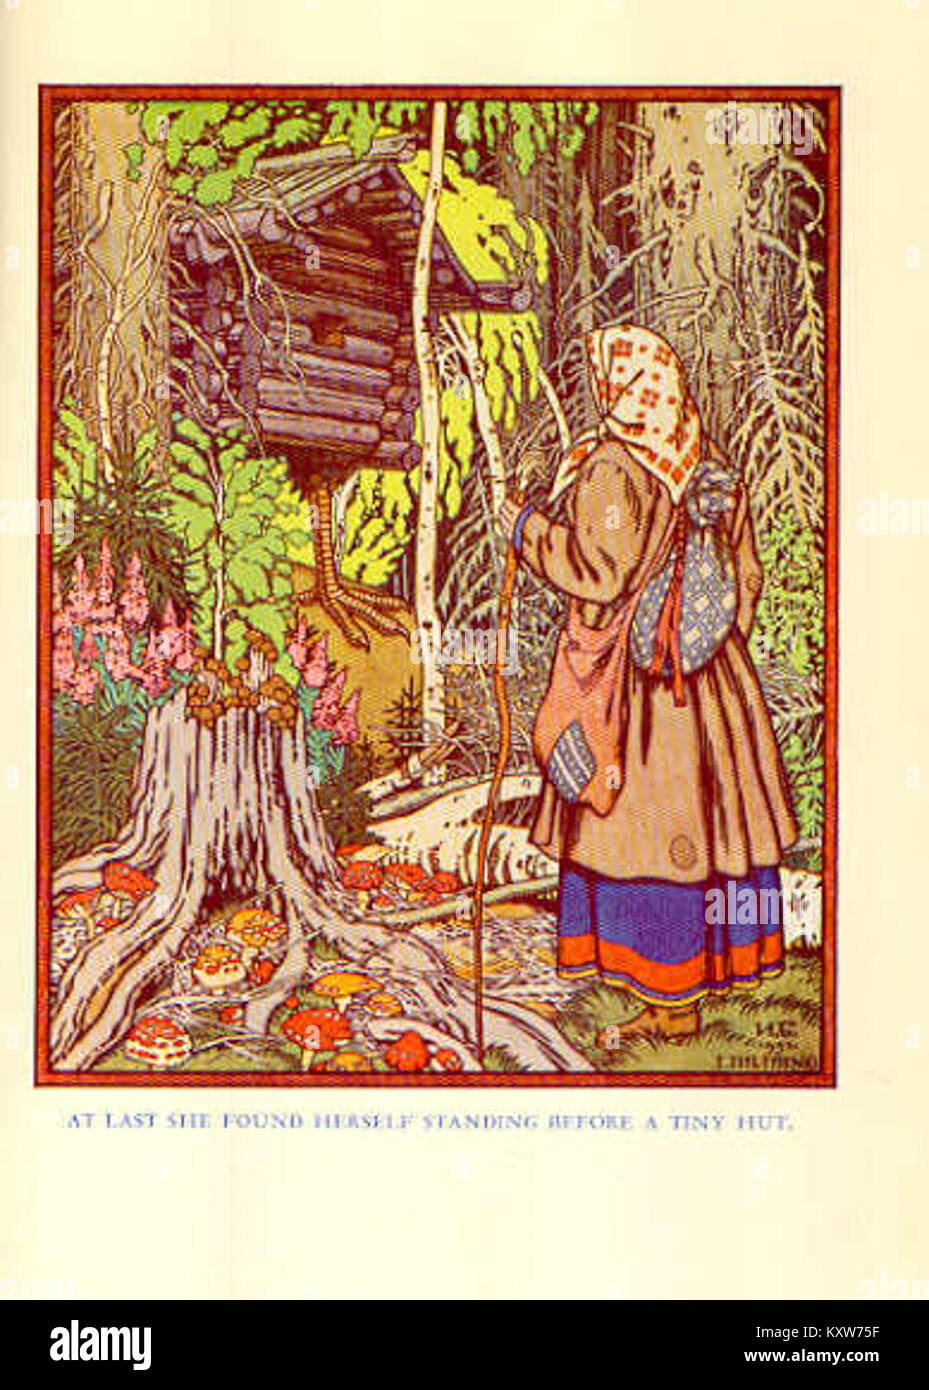 Frances Carpenter. Tales of a Russian Grandmother (Bilibin) - vFeather of Finist the Falcon - Stock Image